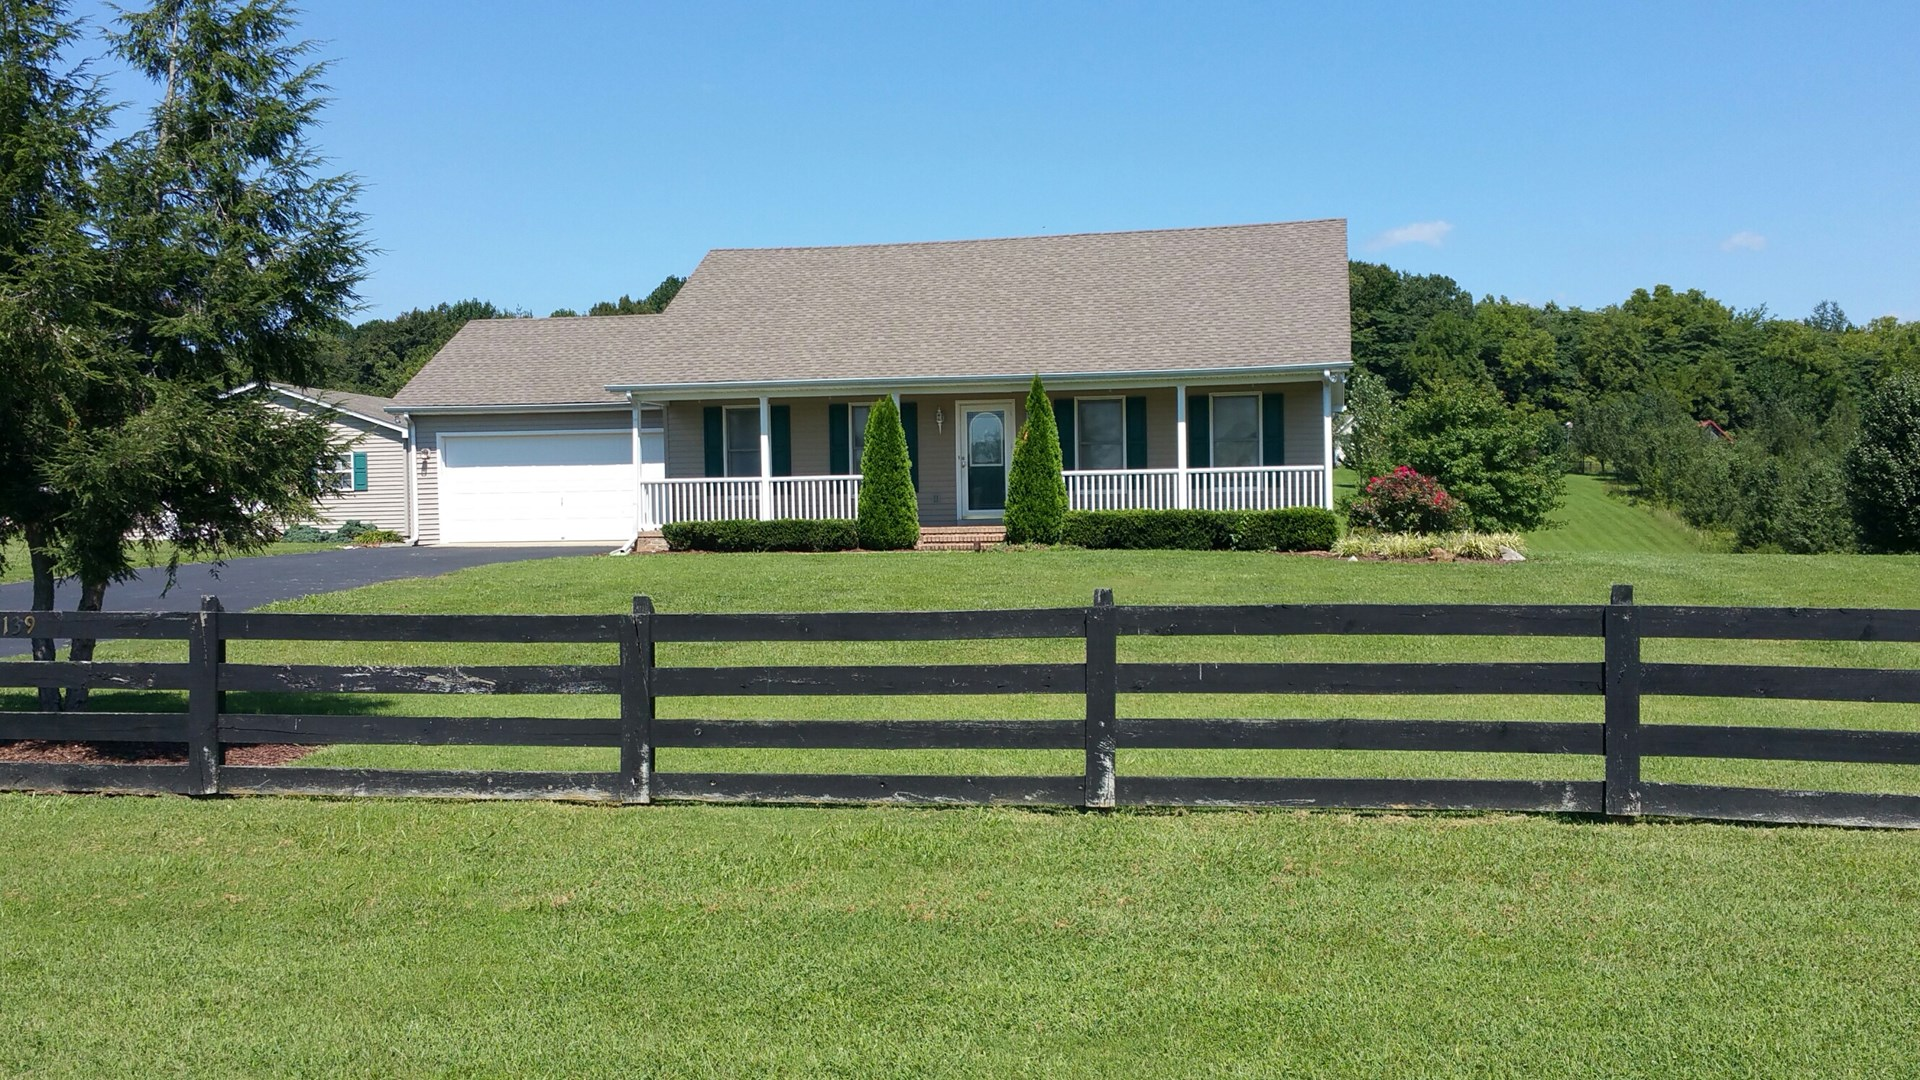 Country home near Franklin Ky. for sale